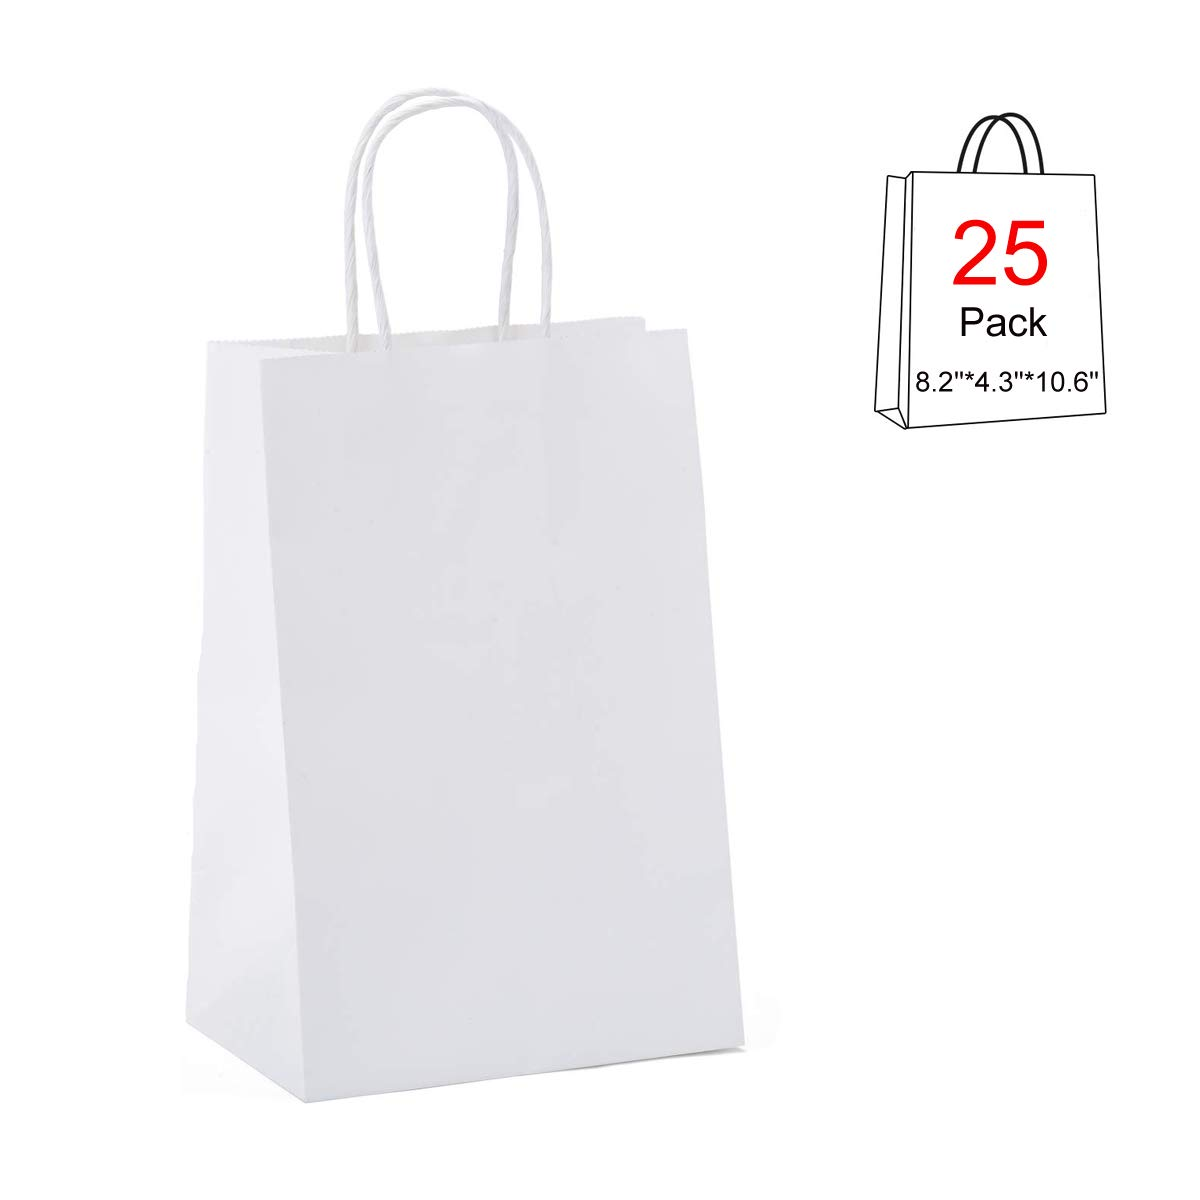 Packaging Business Acidea 12.6 * 4.3 * 9.8 White Kraft Paper Gift Bags Bulk with Handles Ideal for Shopping Craft Retail Party Gifts Goody and Merchandise Bag 25Packs Recycled Wedding